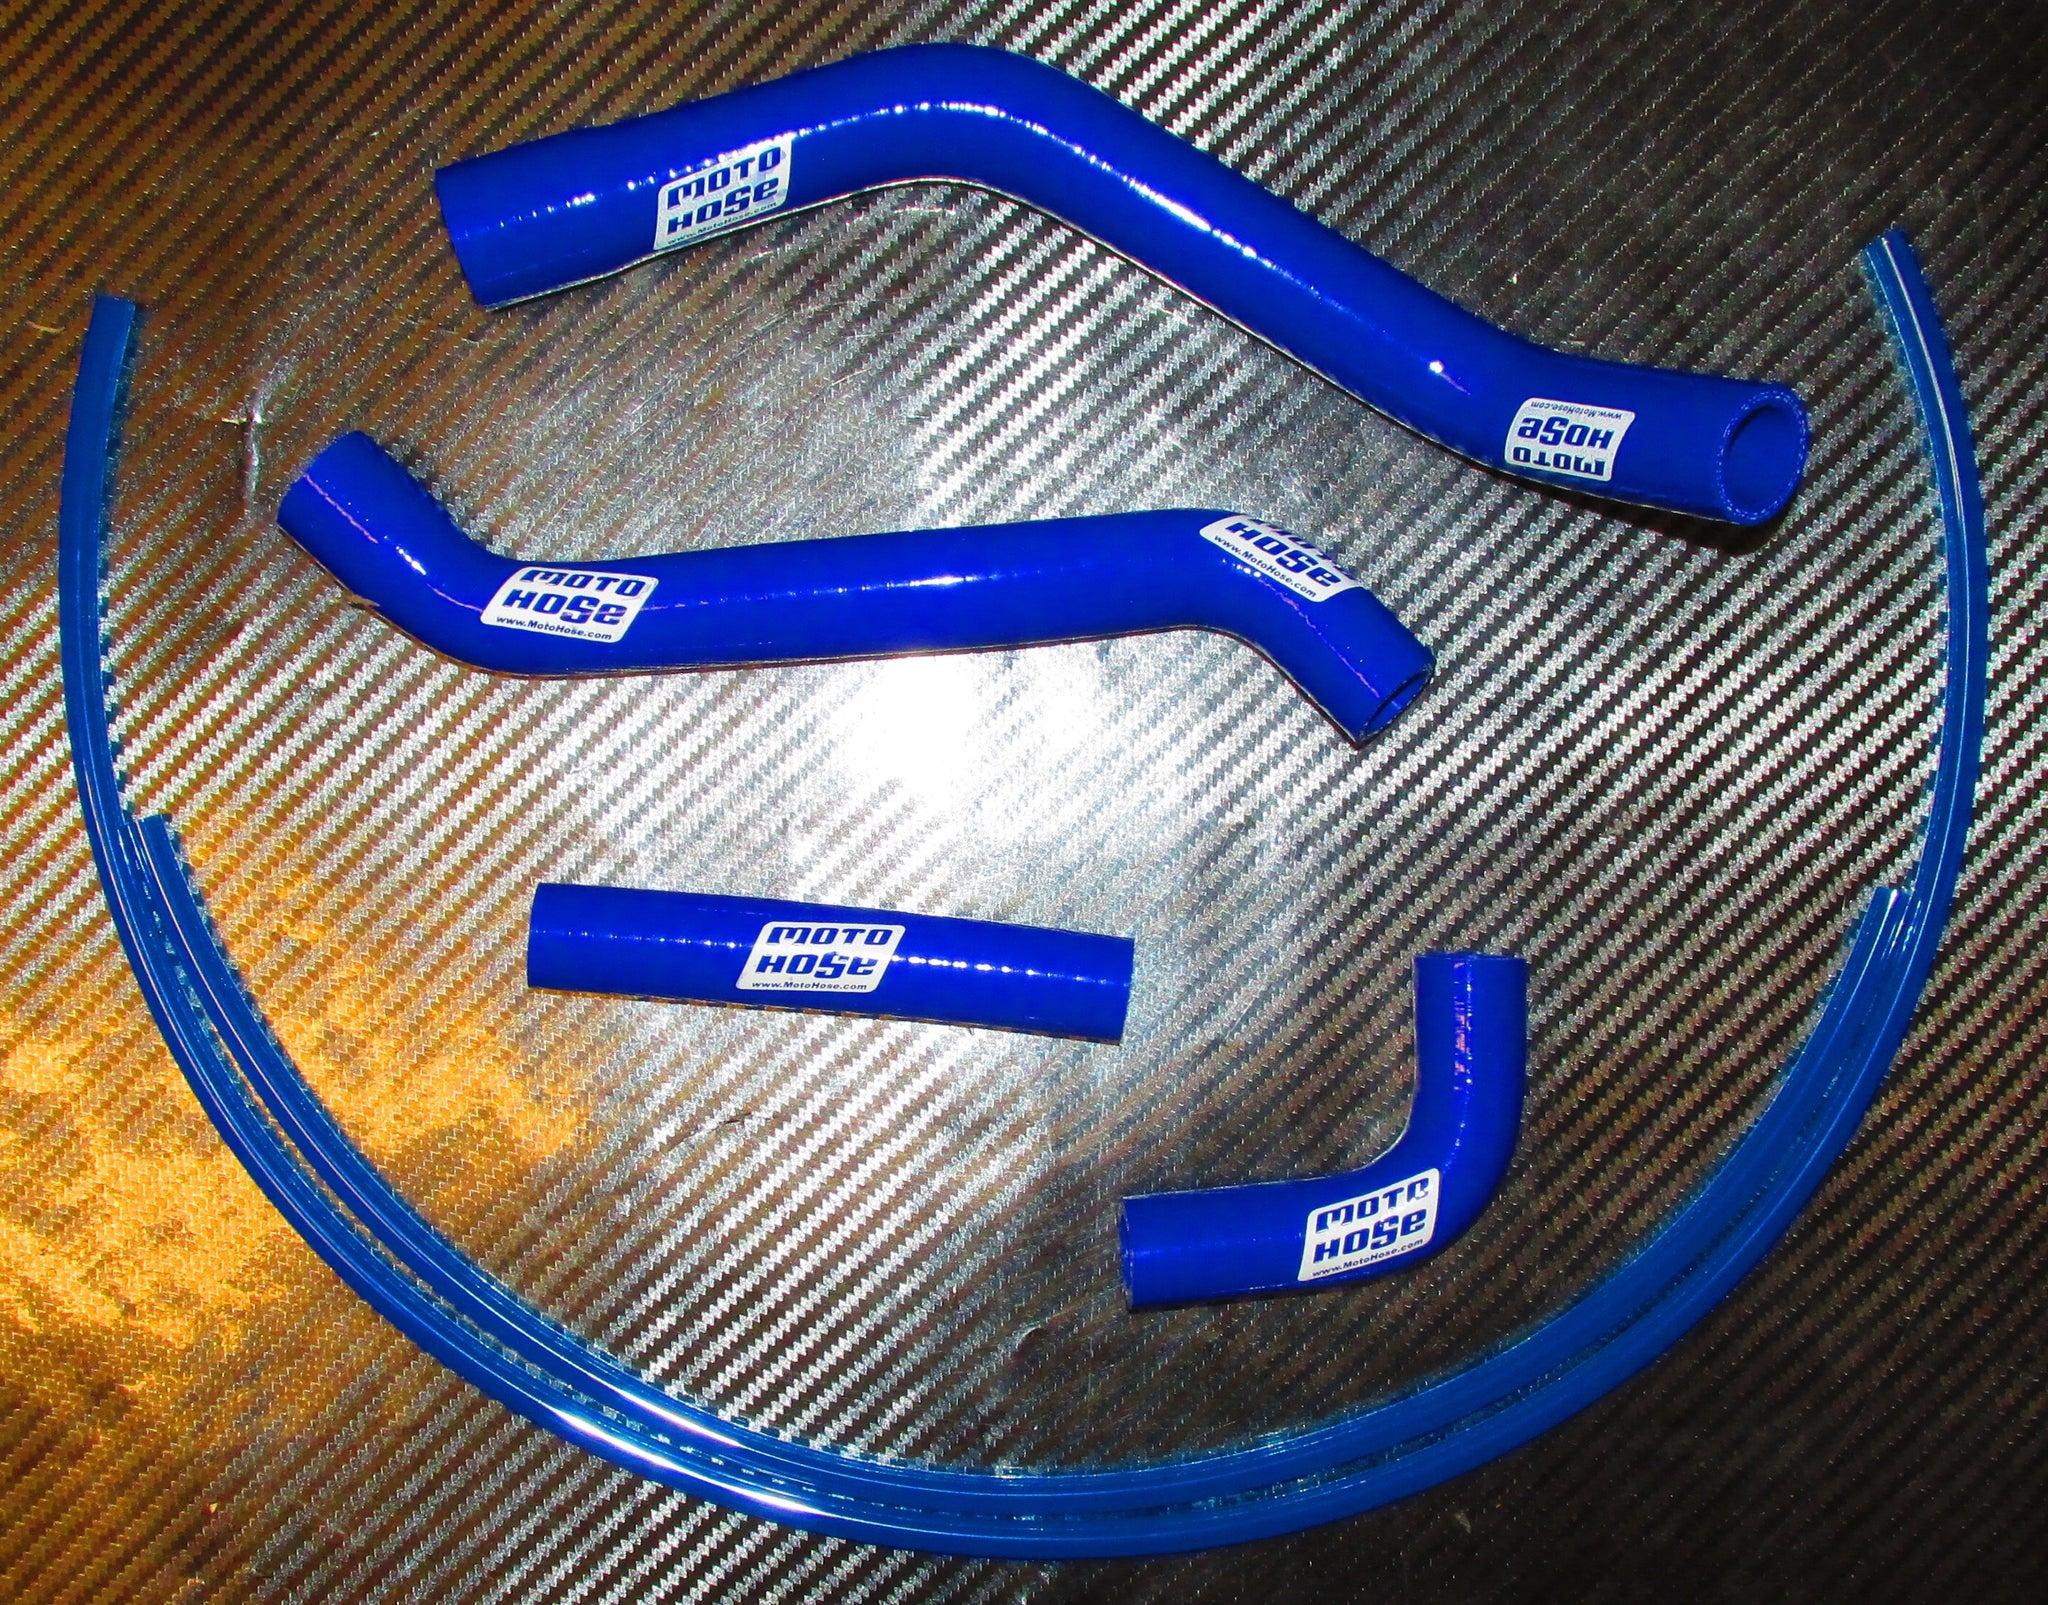 YAMAHA 4 STROKE PREMIUM OFF ROAD HOSE KIT